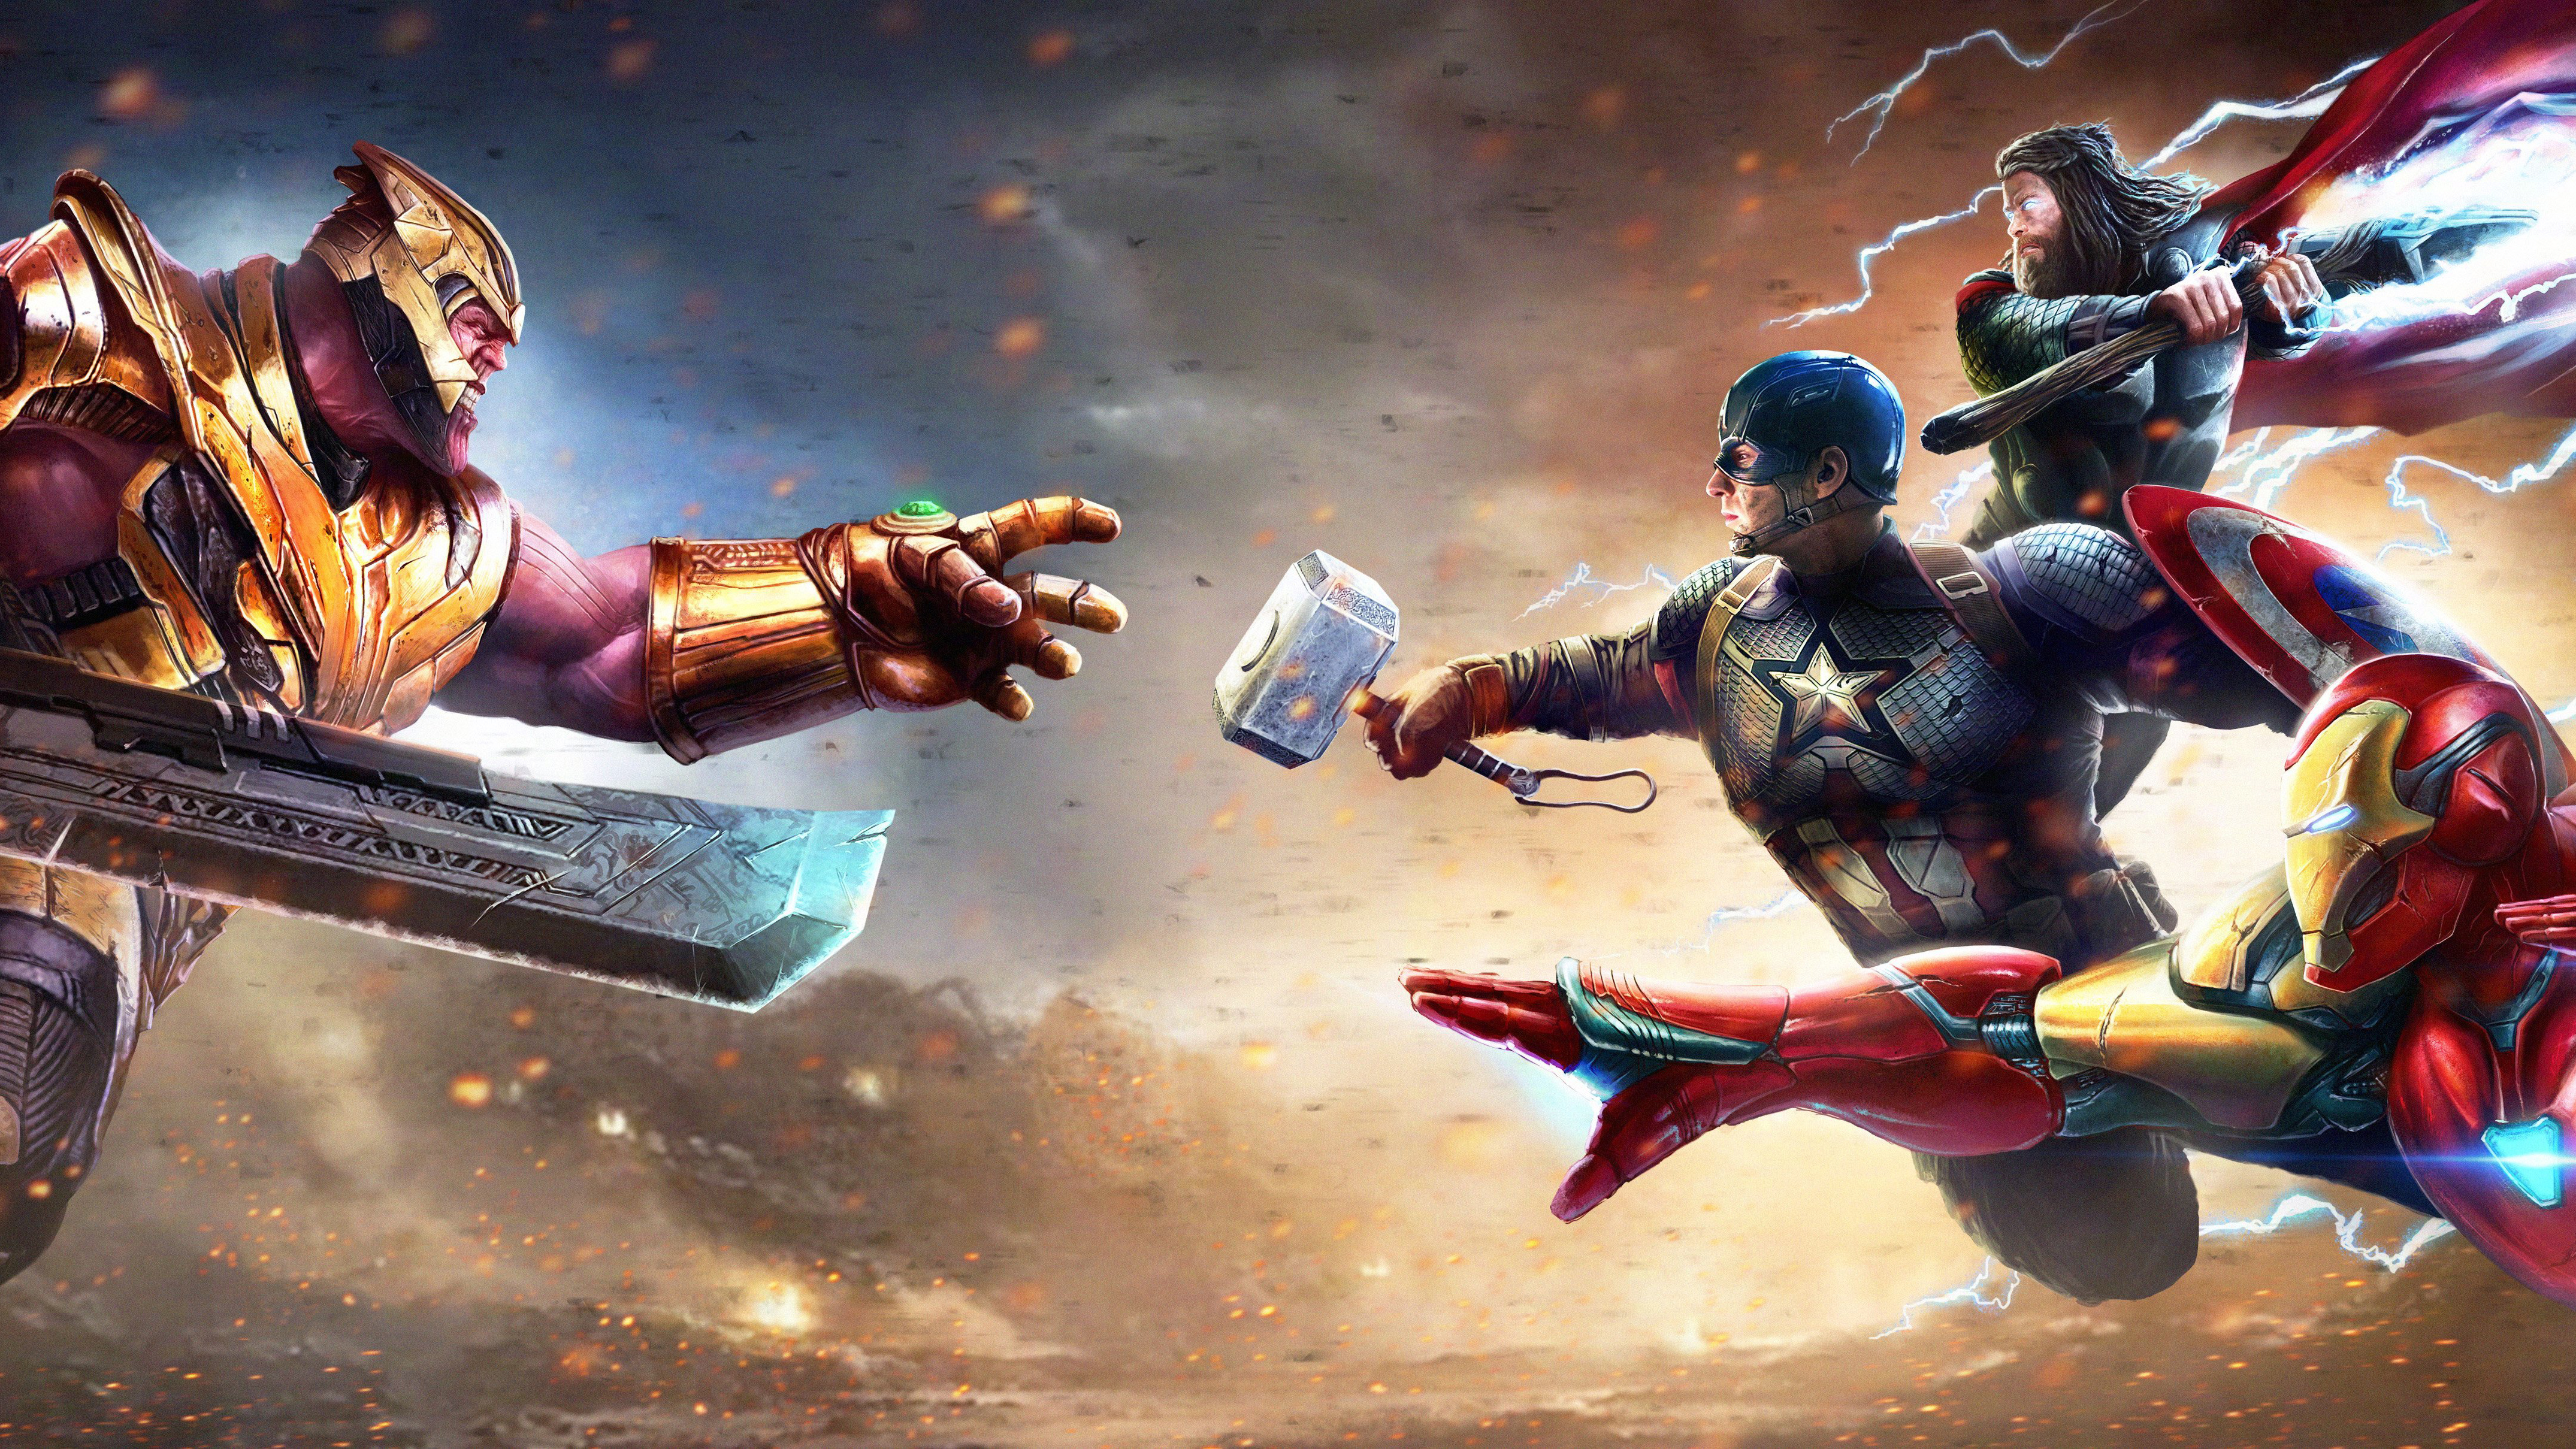 Thanos Against Captain America Iron Man And Thor Wallpaper